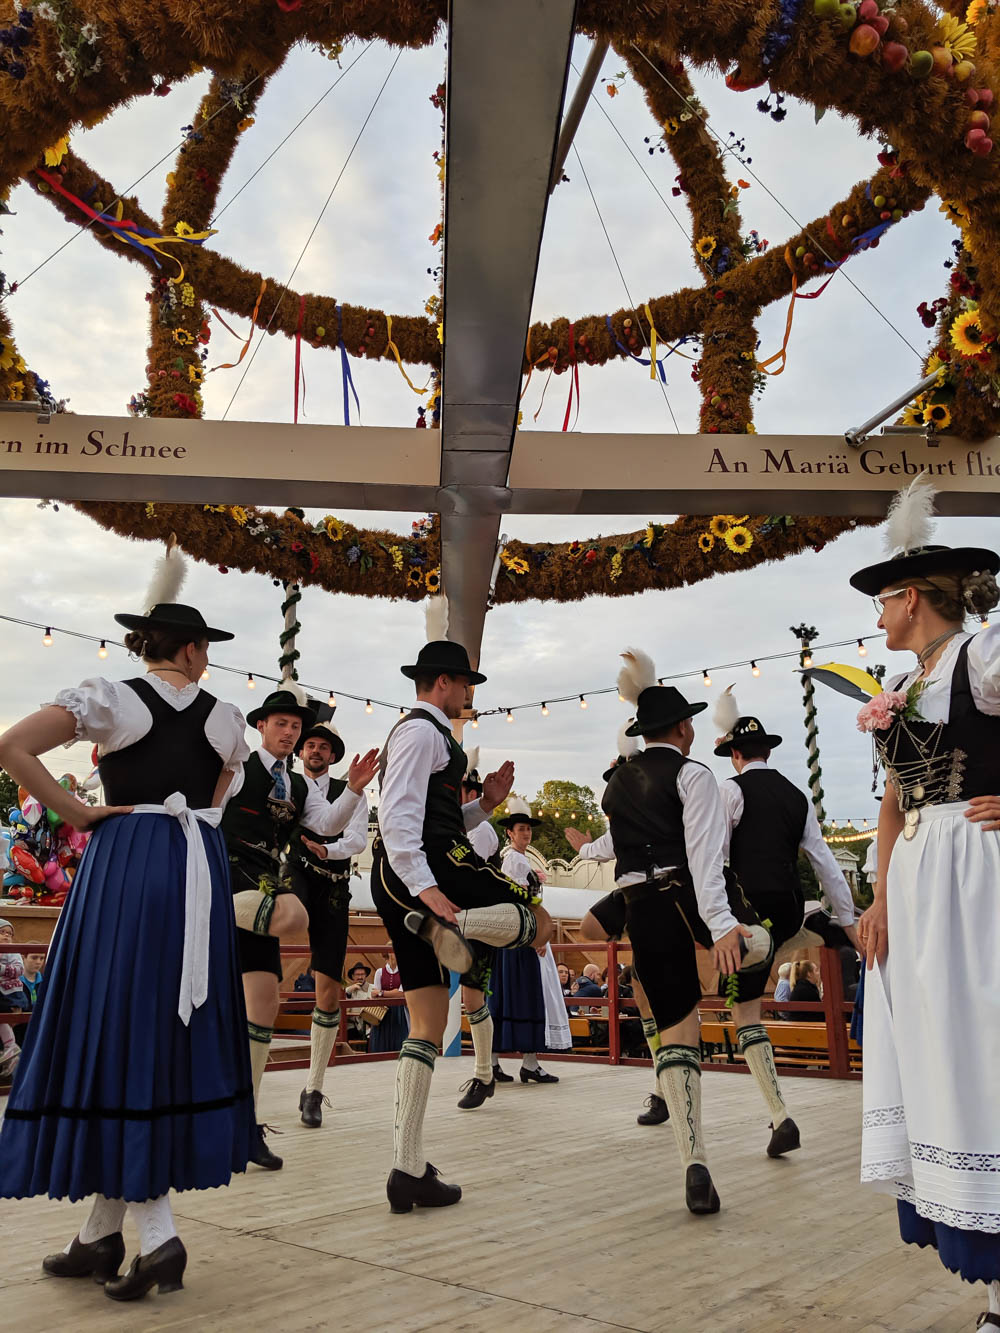 Dancing at the Festzelt Tradition | Will Oktoberfest 2021 take place? Is Oktoberfest 2021 going to be canceled? All the info you need to know like what to do, how to plan ahead, official announcements out of Munich, Germany